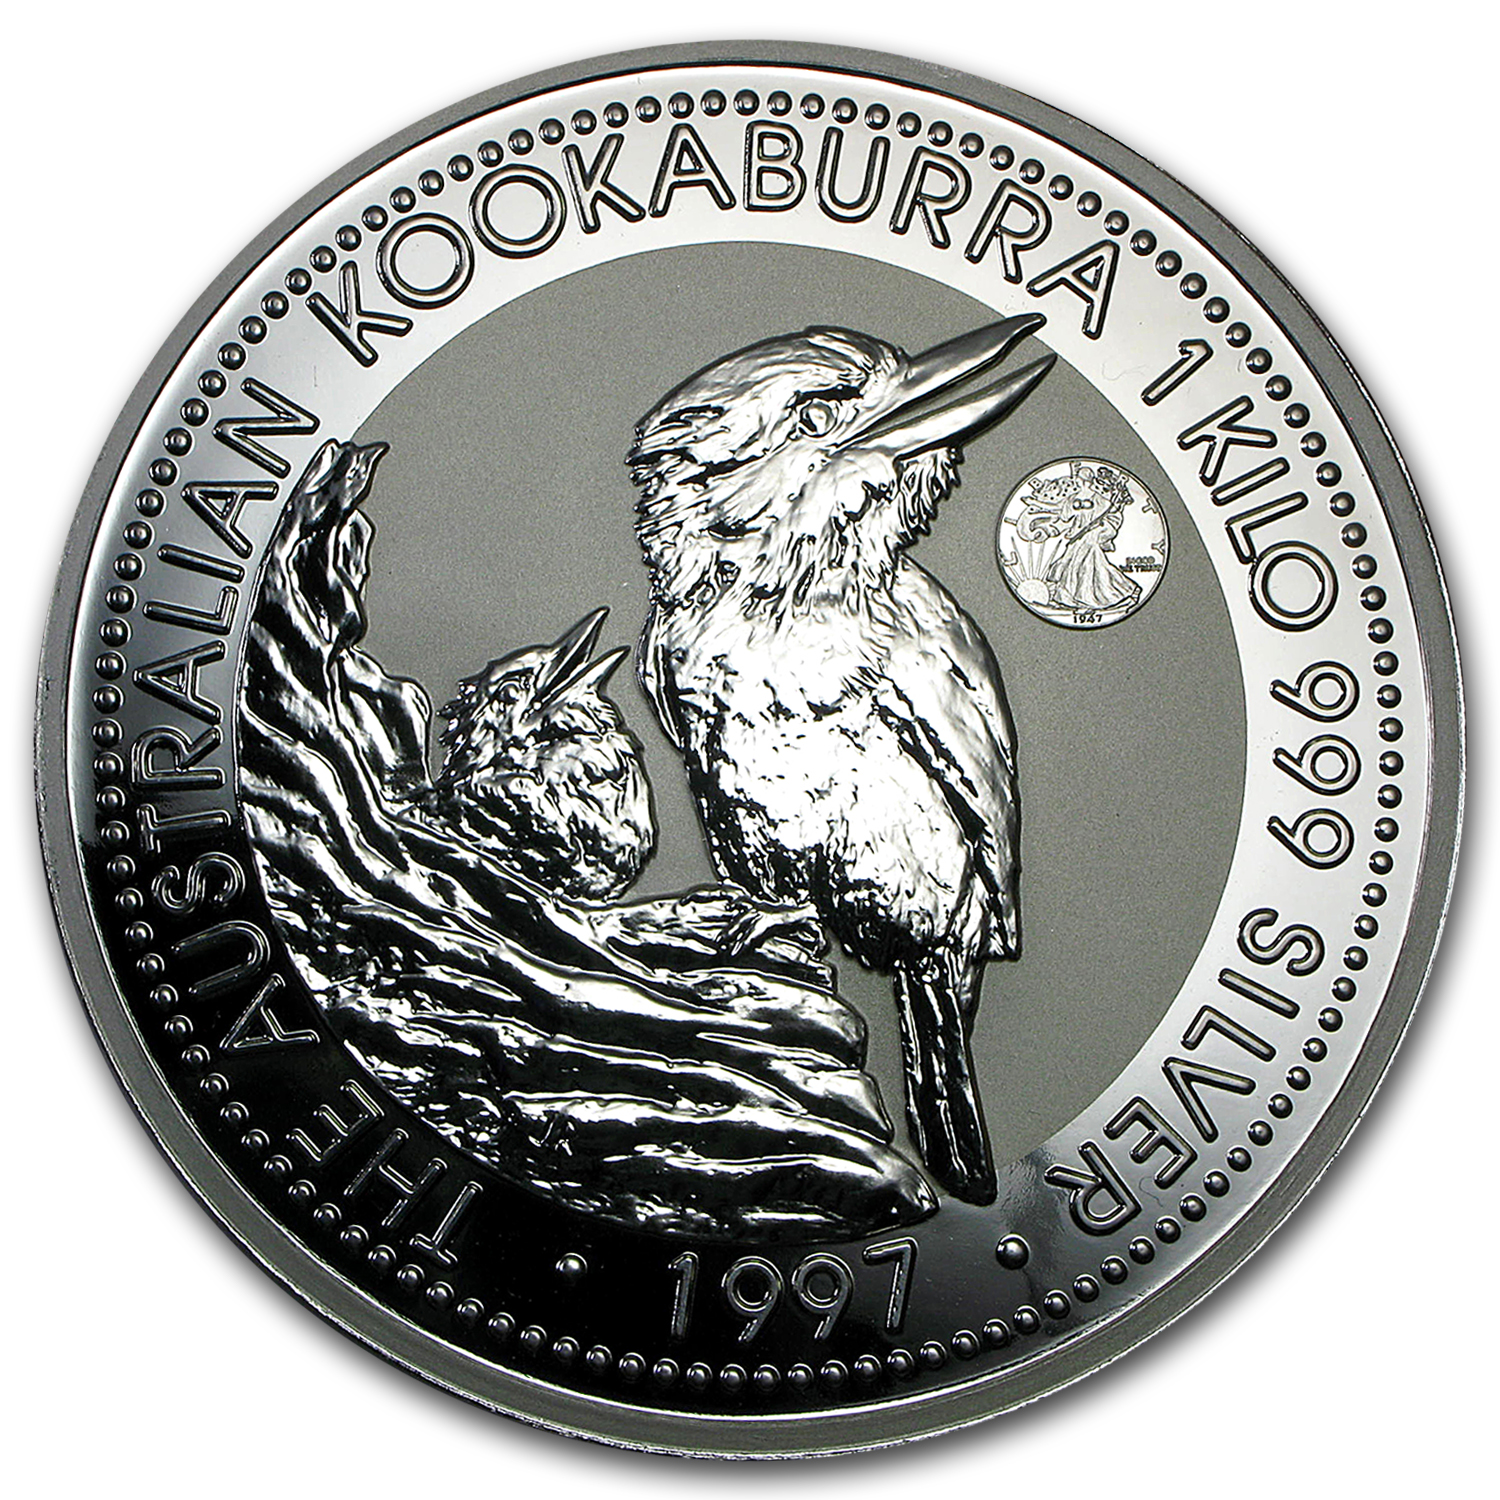 1997 1 Kilo Silver Kookaburra - Walking Liberty Privy (w/Box)